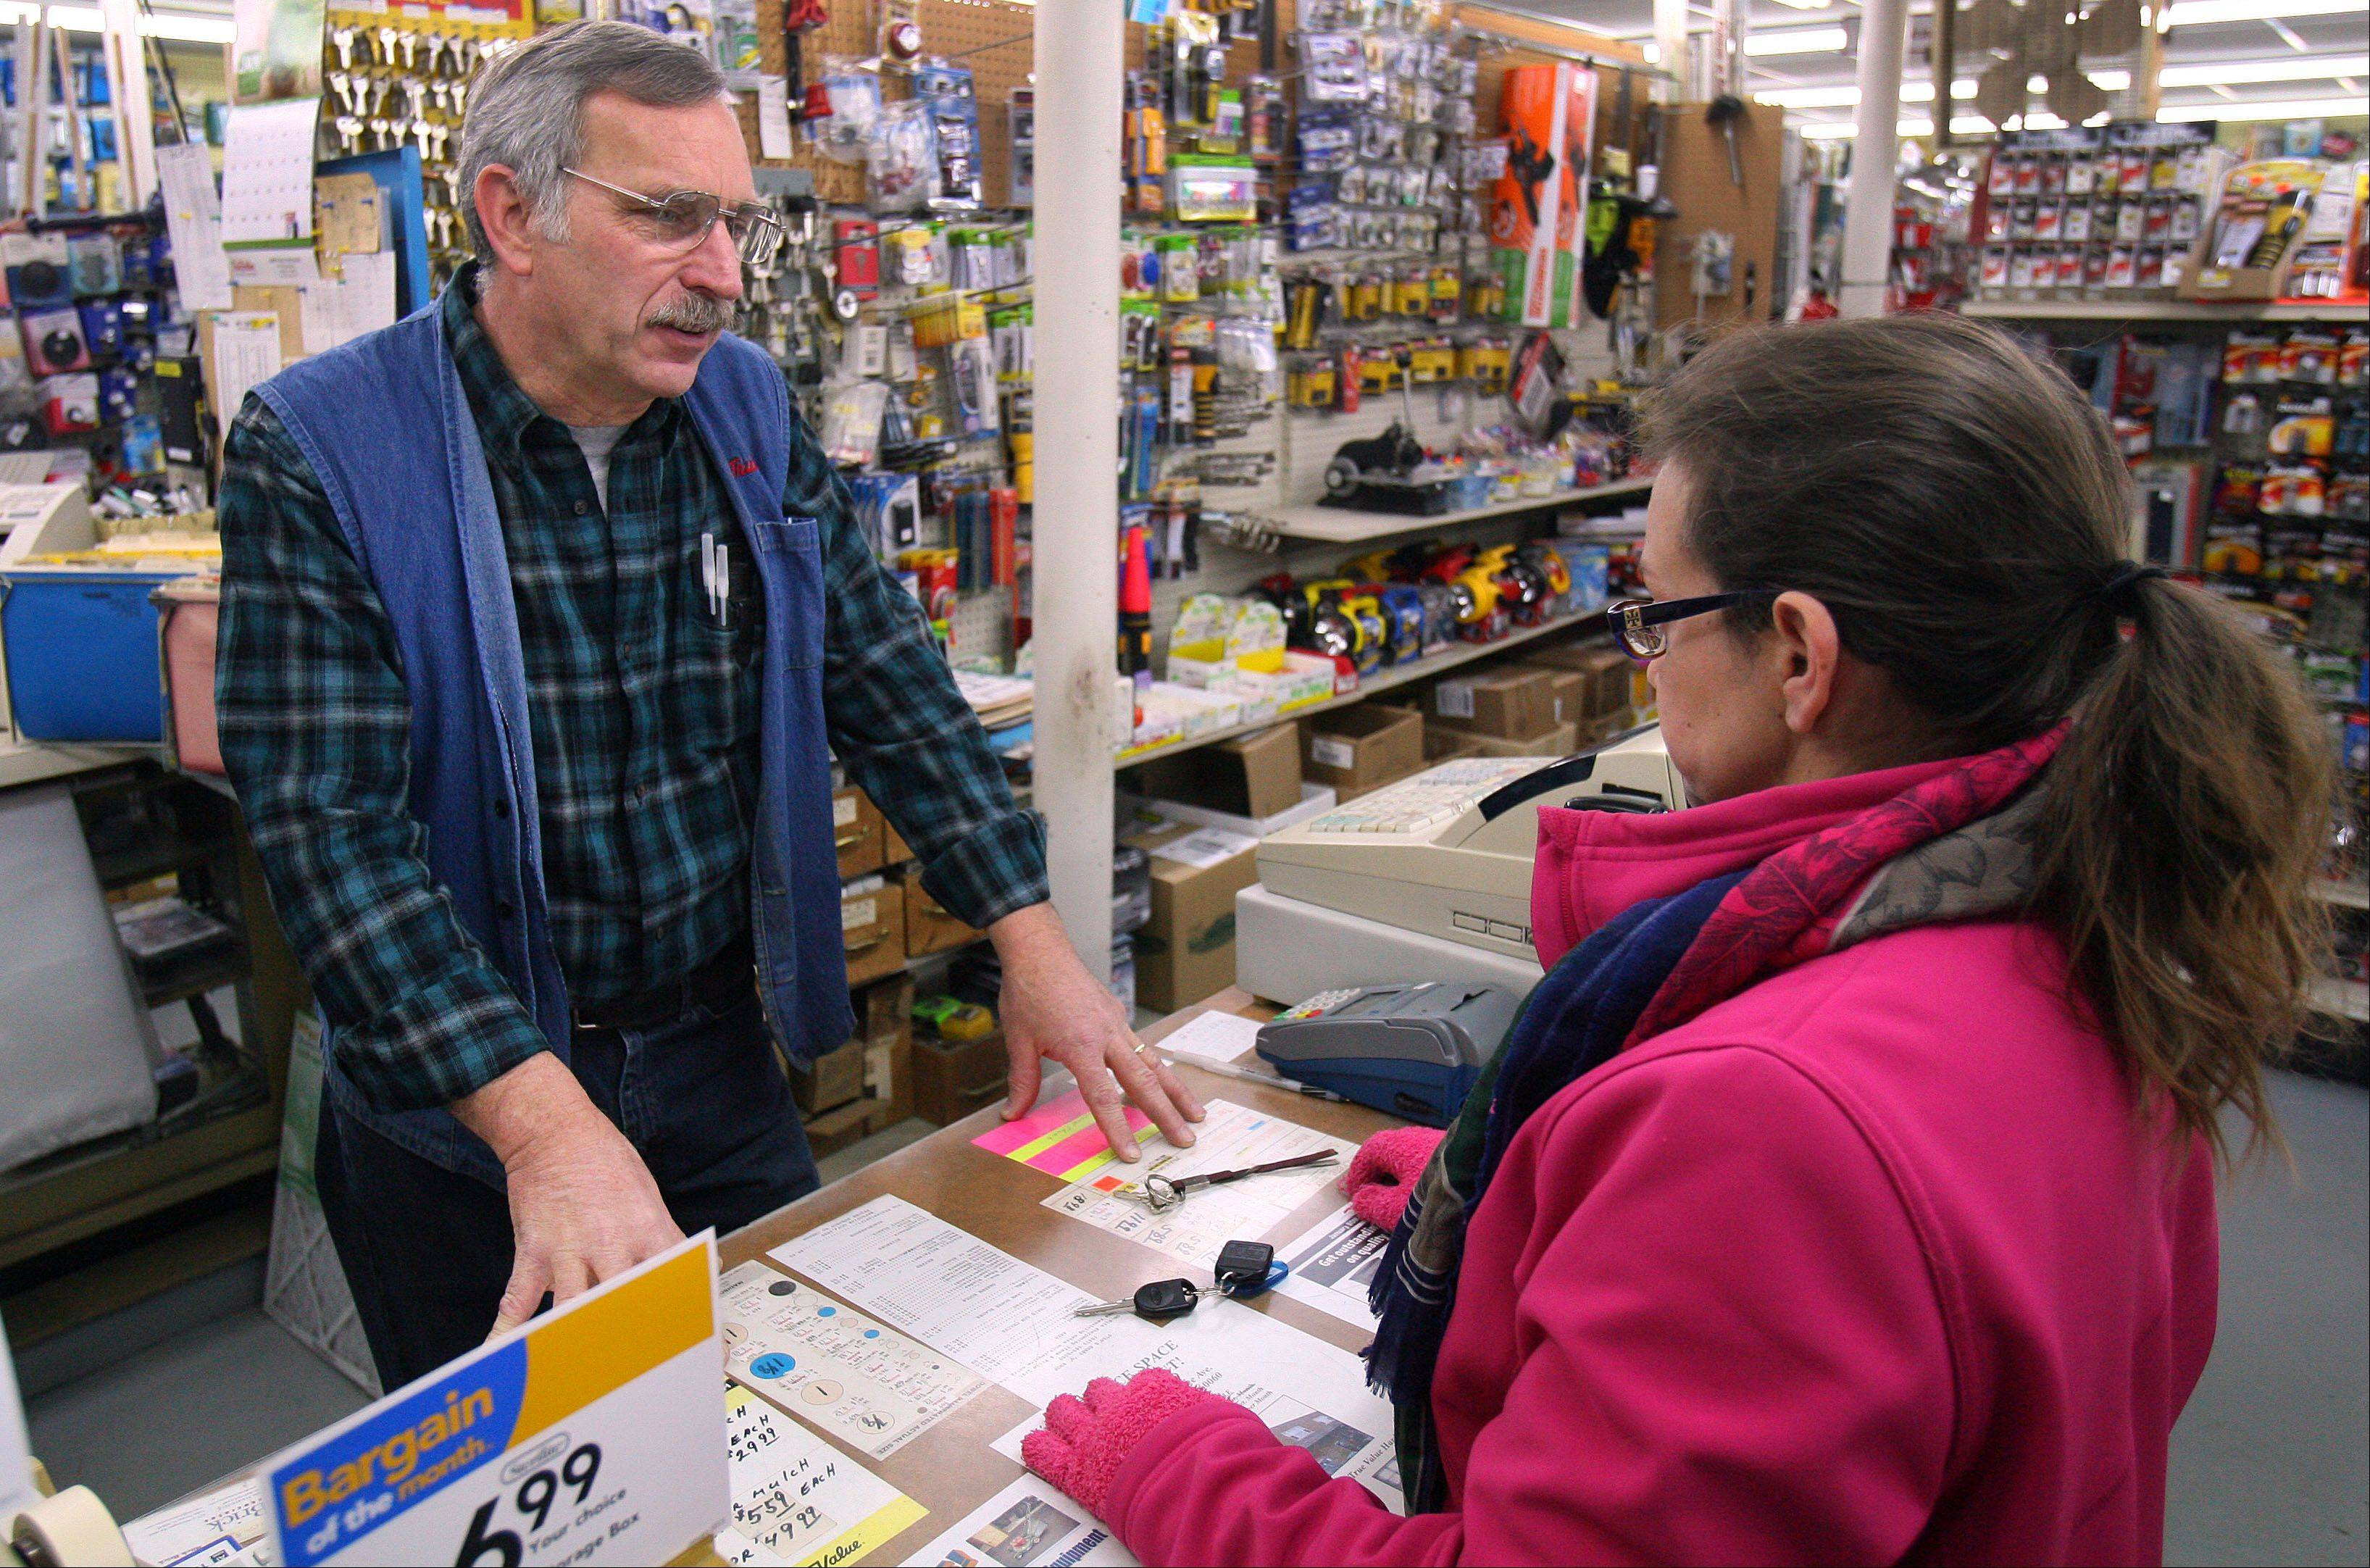 Ed LeJeune helps Tracy Lundman, of Libertyville, with a key purchase at the Libertyville True Value. The LeJeune family has operated the store on Milwaukee Avenue since 1967.